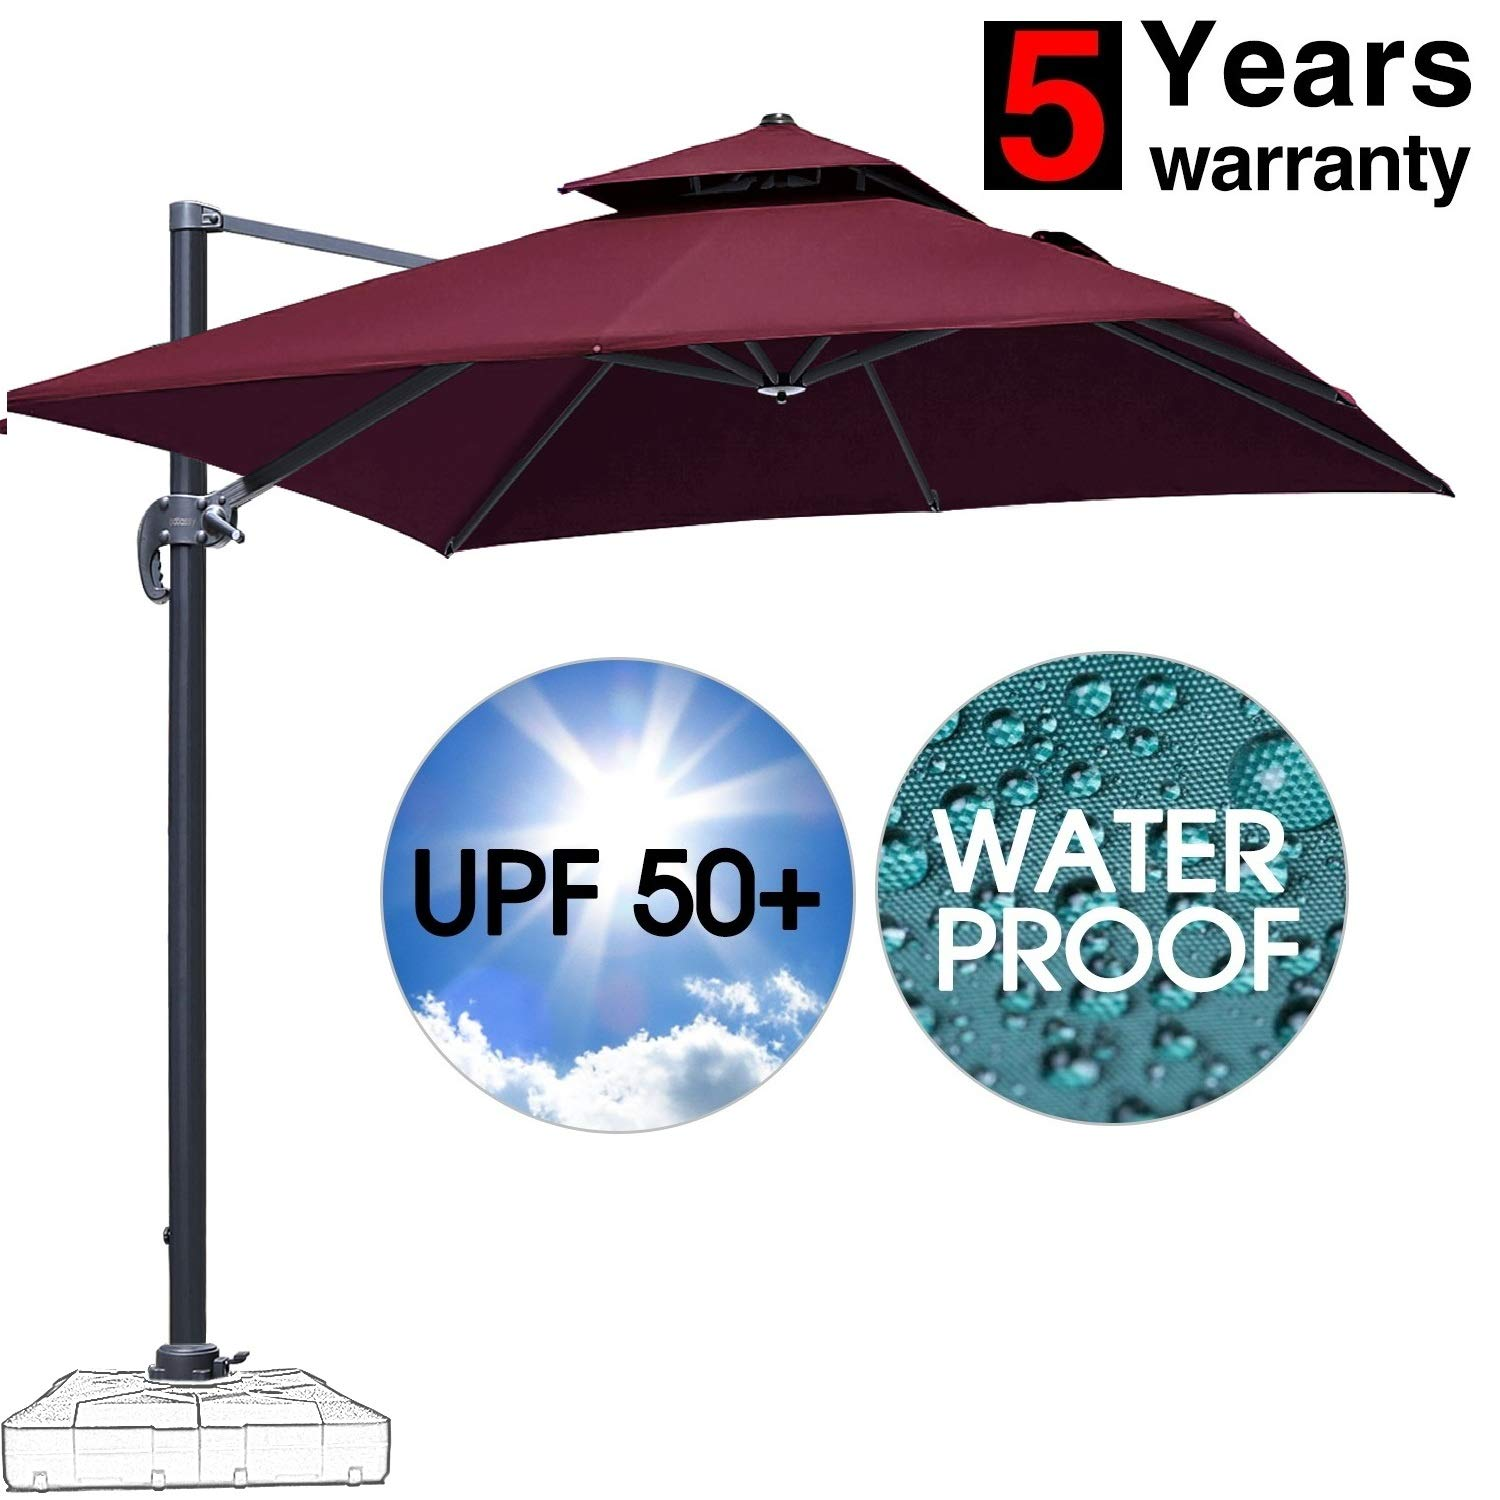 Patiassy 10 Feet Double Top Square Patio Umbrella Offset Hanging Umbrella Outdoor Market Garden Cantilever Umbrella, 5 Years Non-Fading Fabric All Aluminum Custom Frame, Red